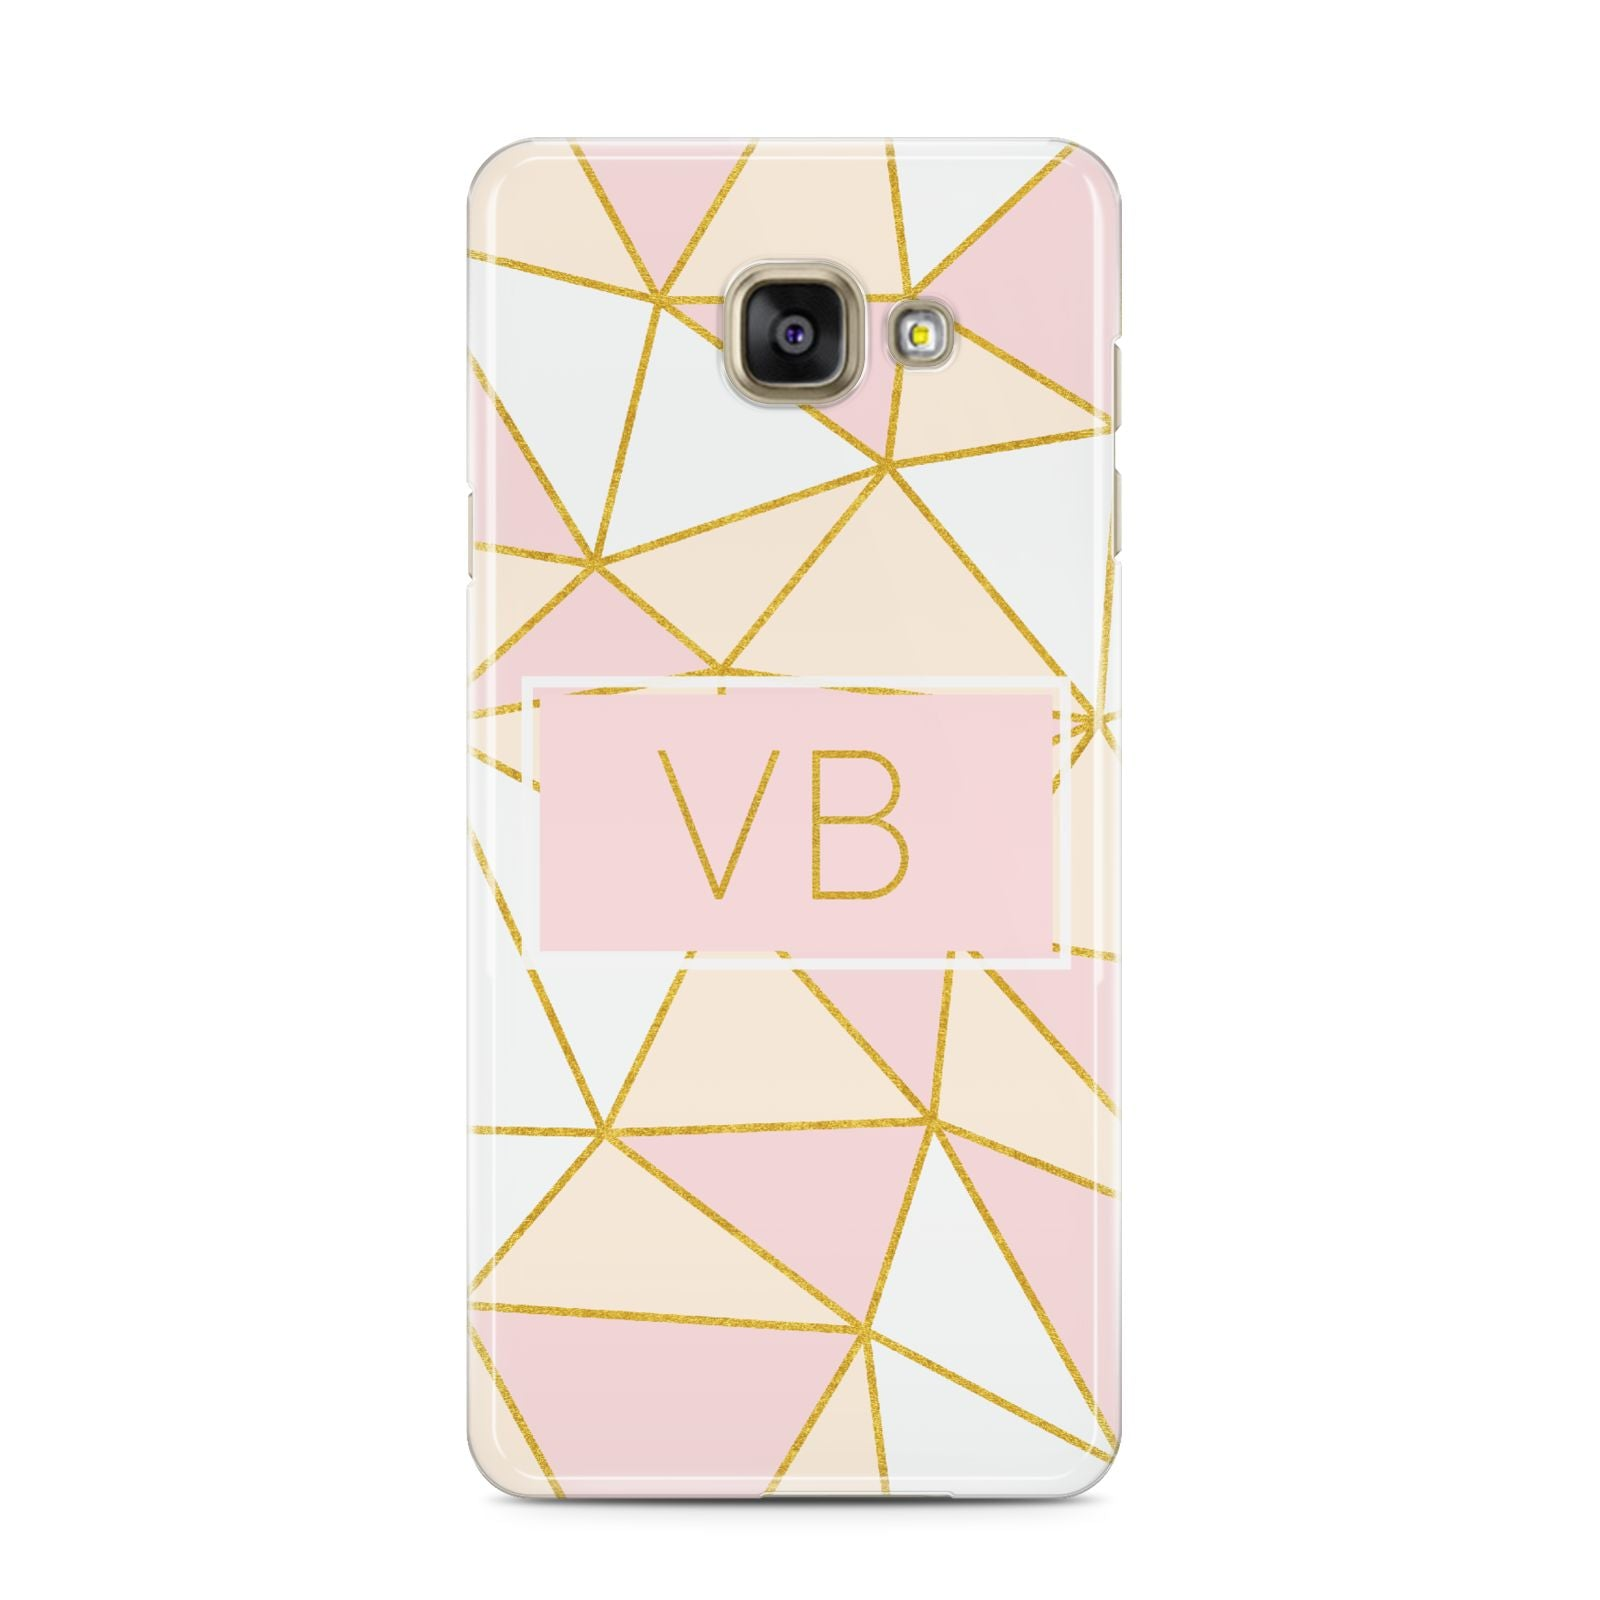 Personalised Gold Initials Geometric Samsung Galaxy A3 2016 Case on gold phone